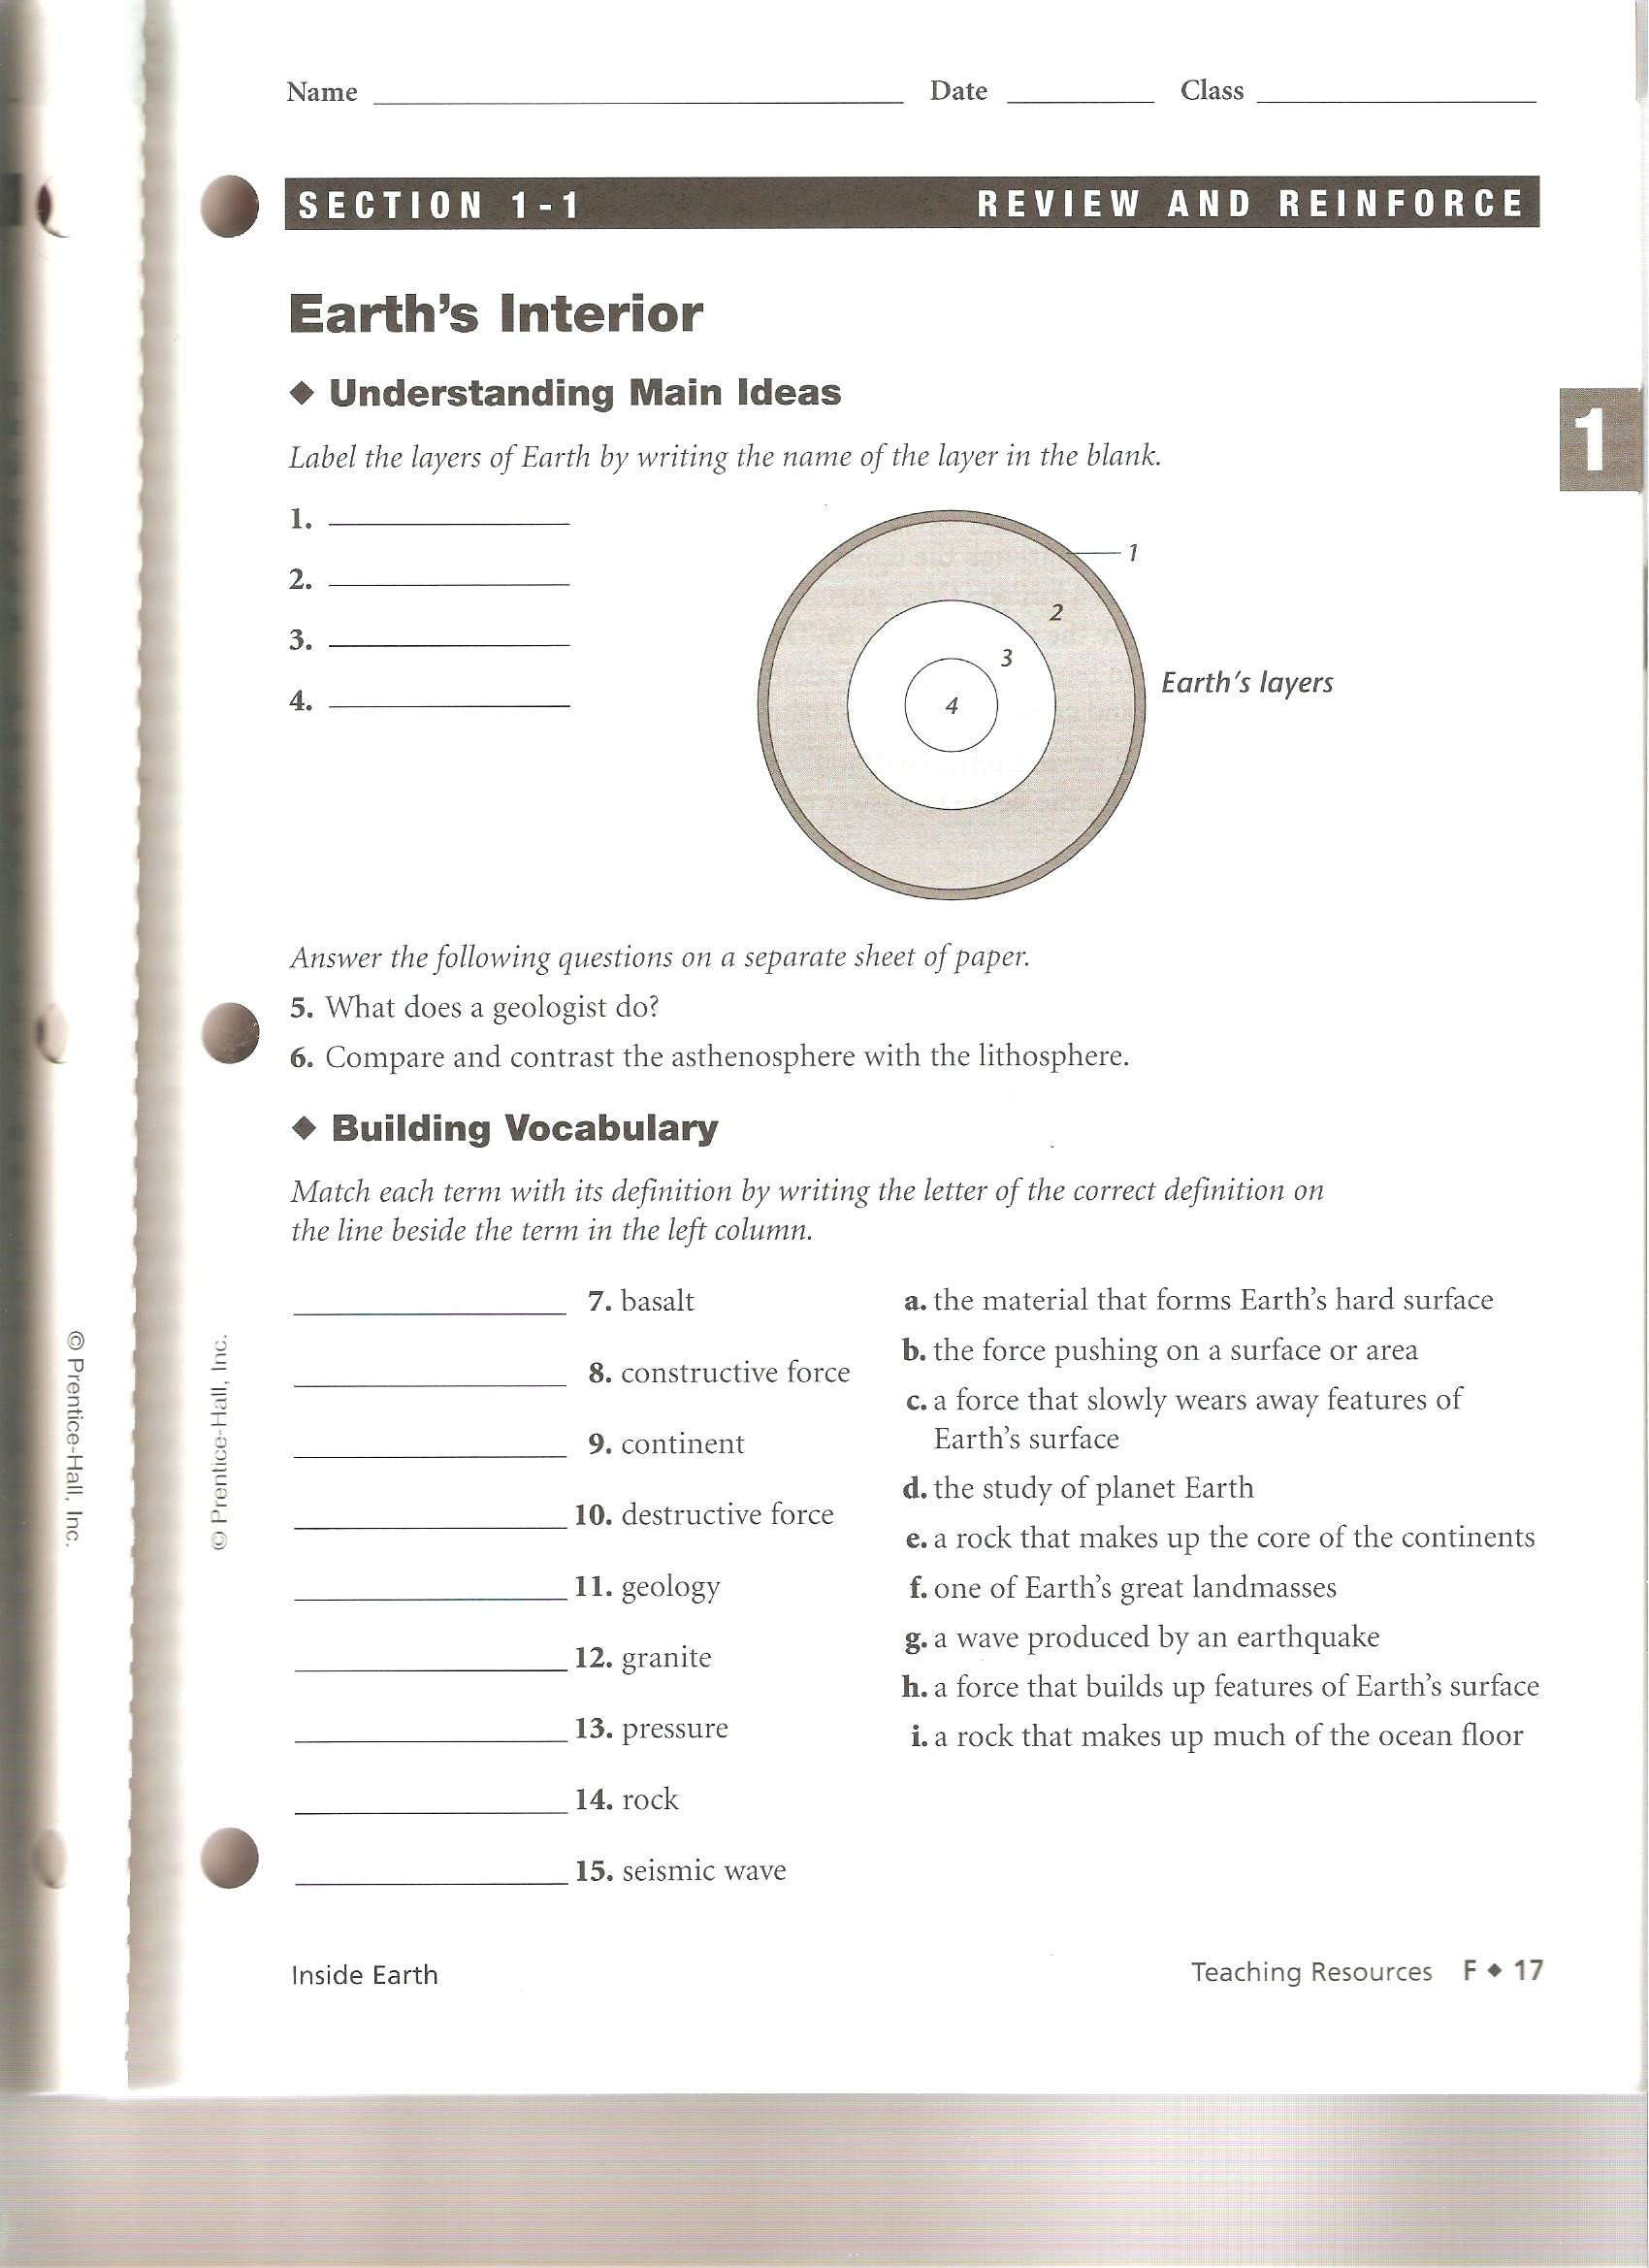 vaap worksheets for 8th grade science